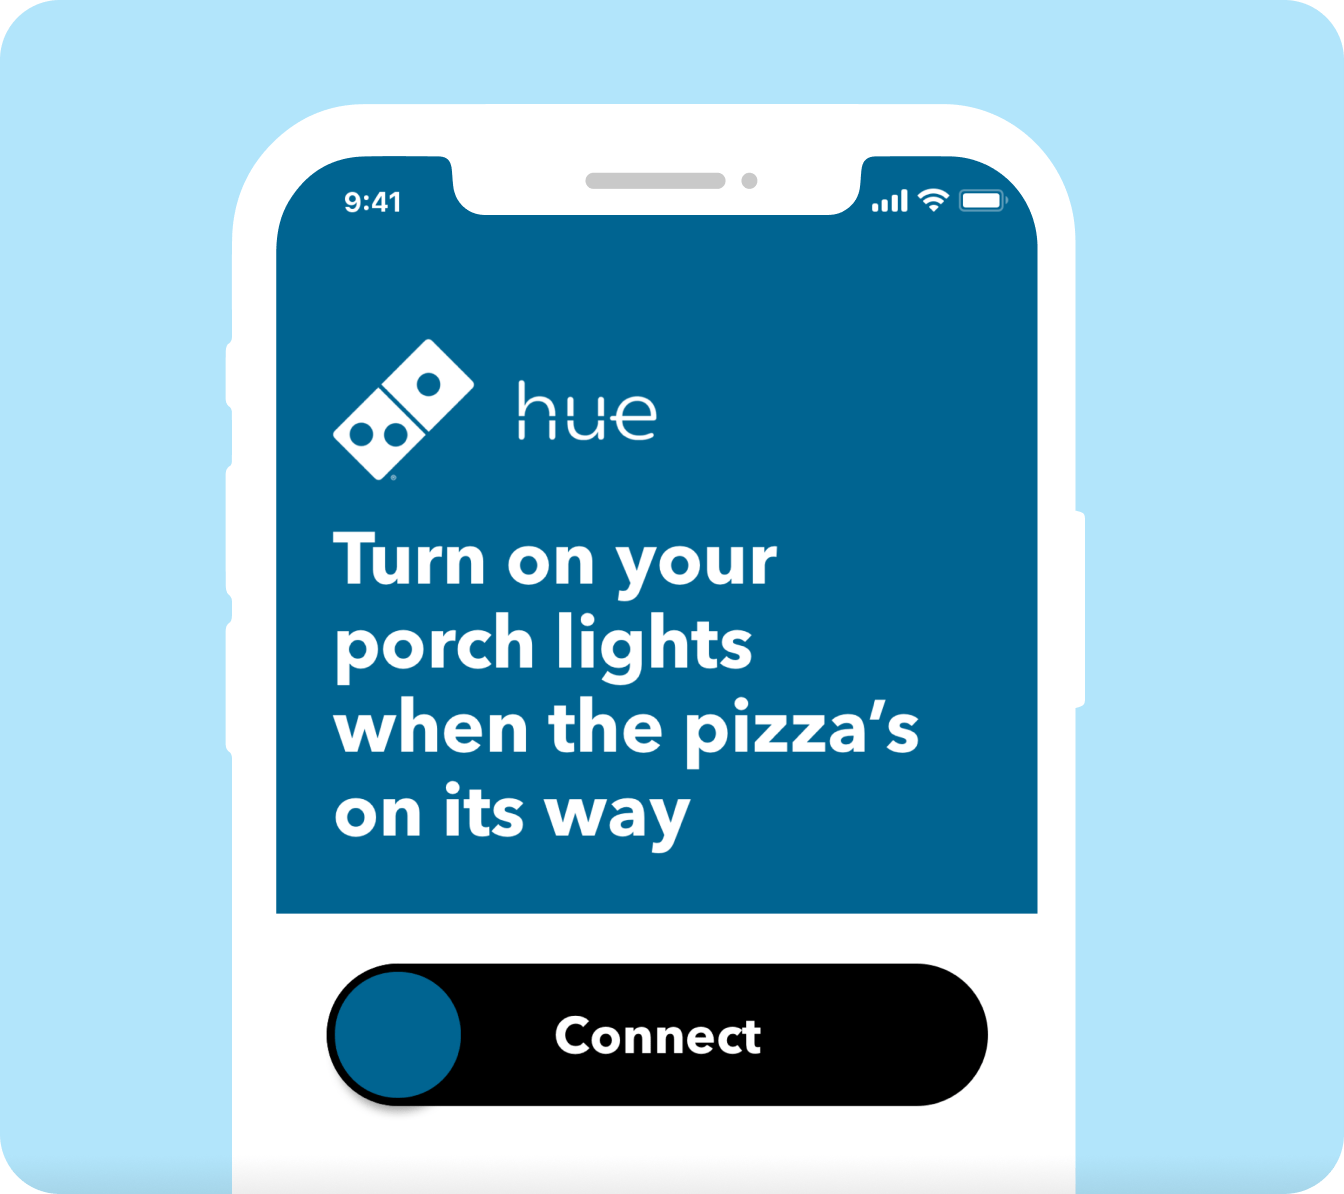 iPhone: Turn on your porch lights when the pizza's on its way